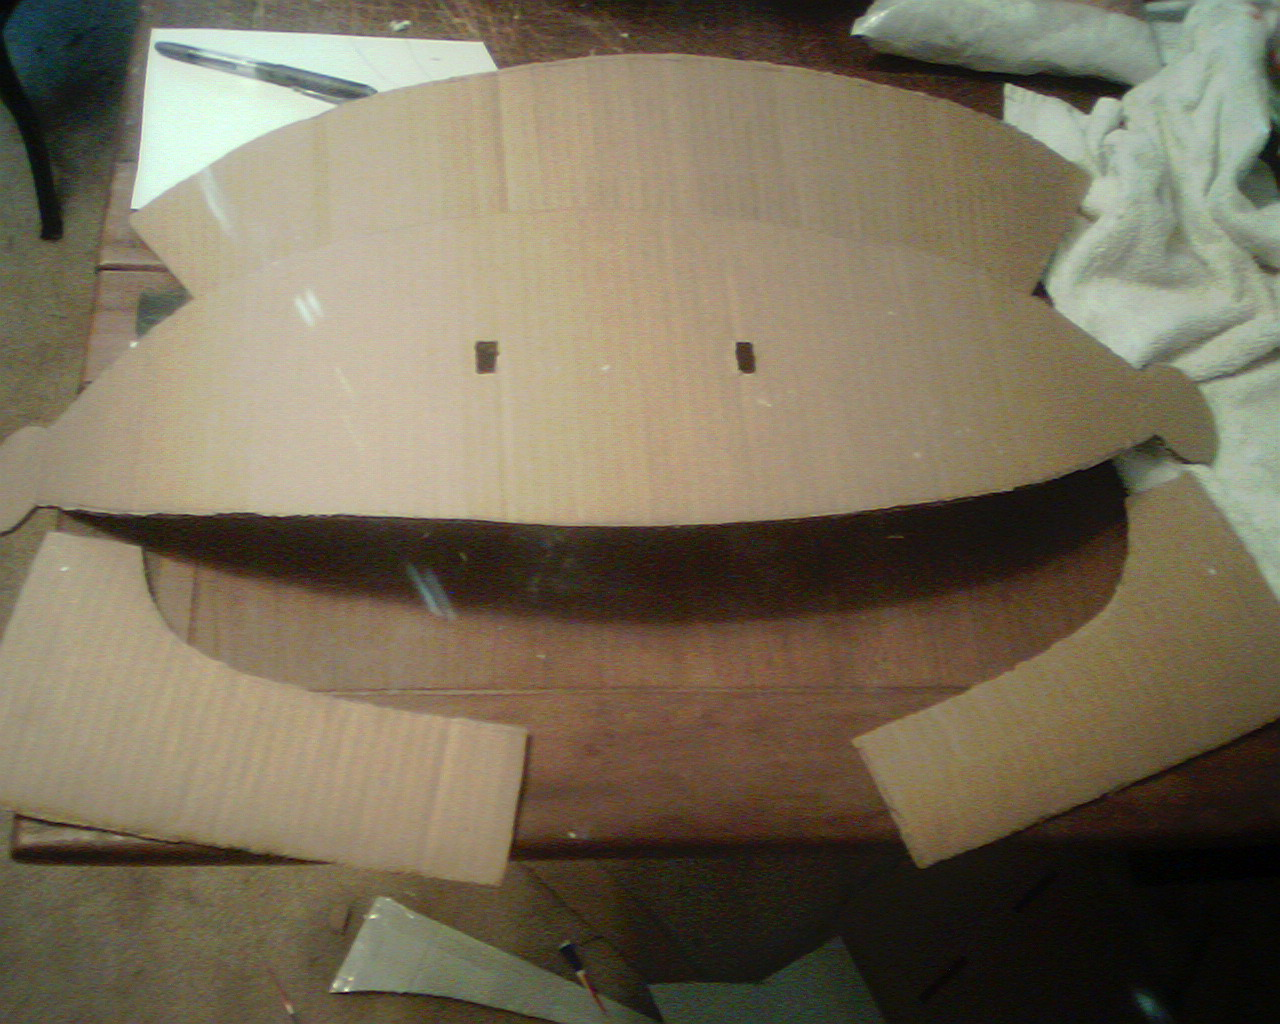 Picture of Making It More Helmet-Like